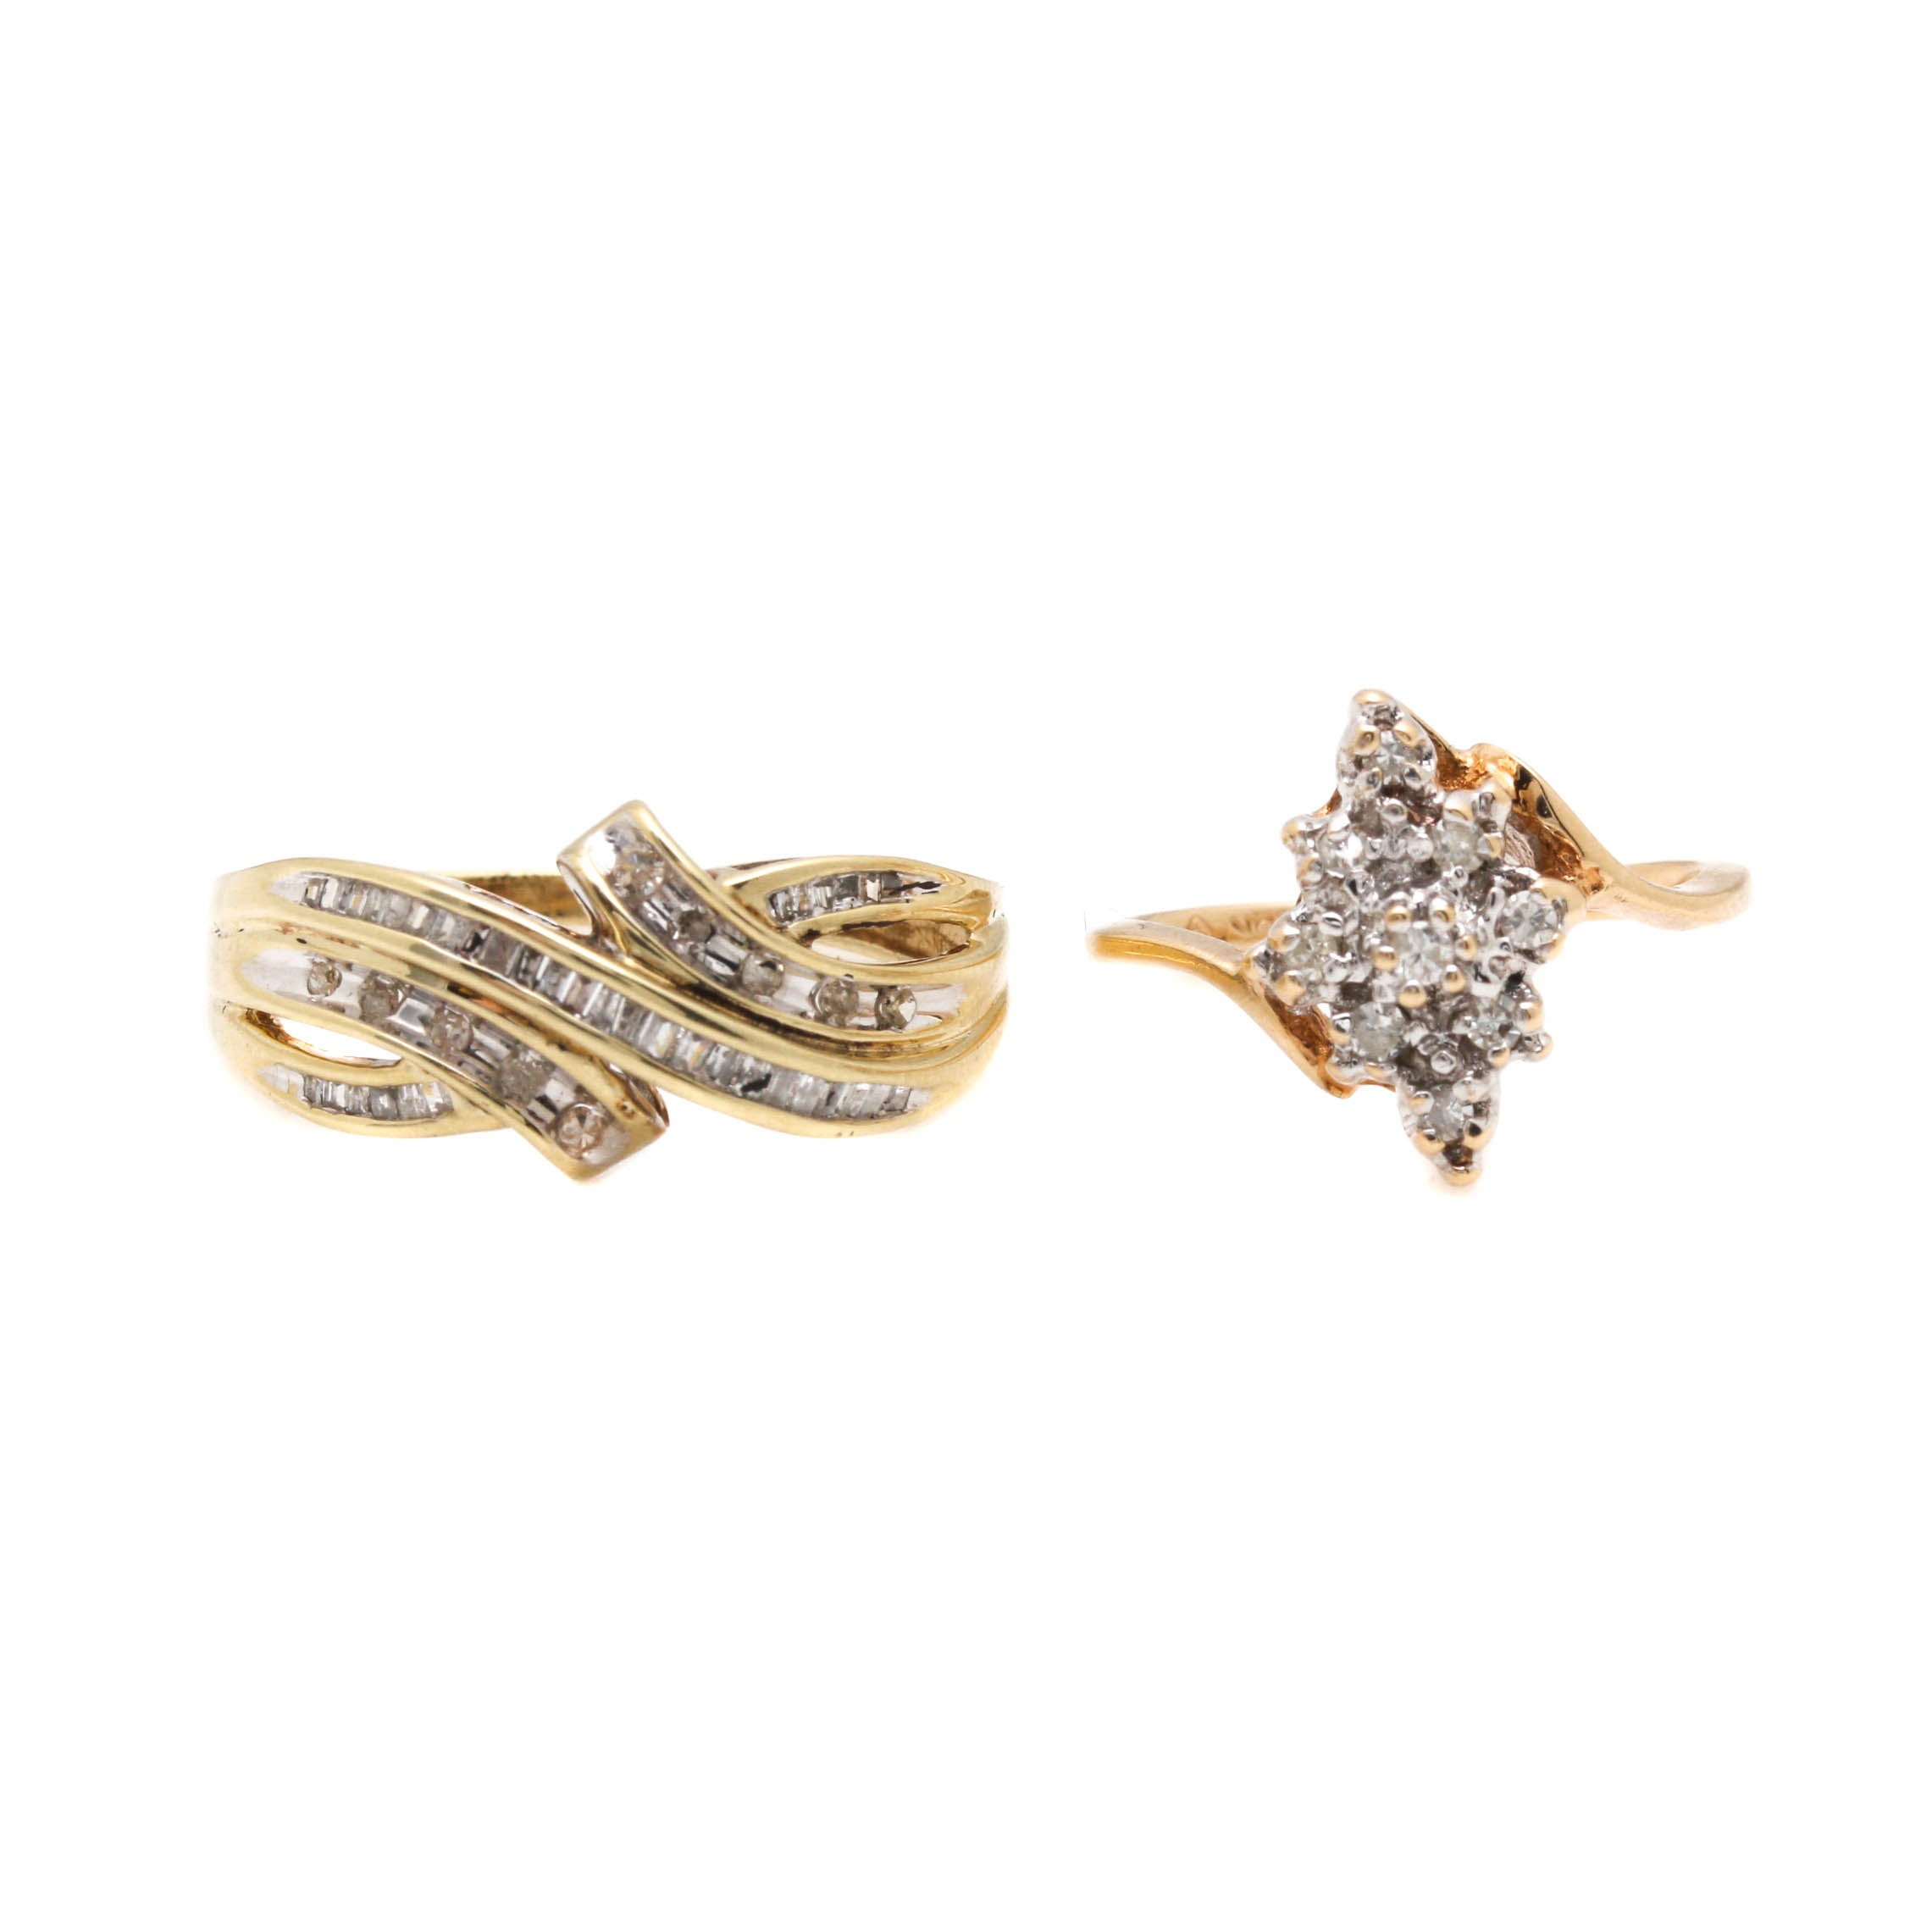 Selection of 10K Yellow Gold Diamond Rings